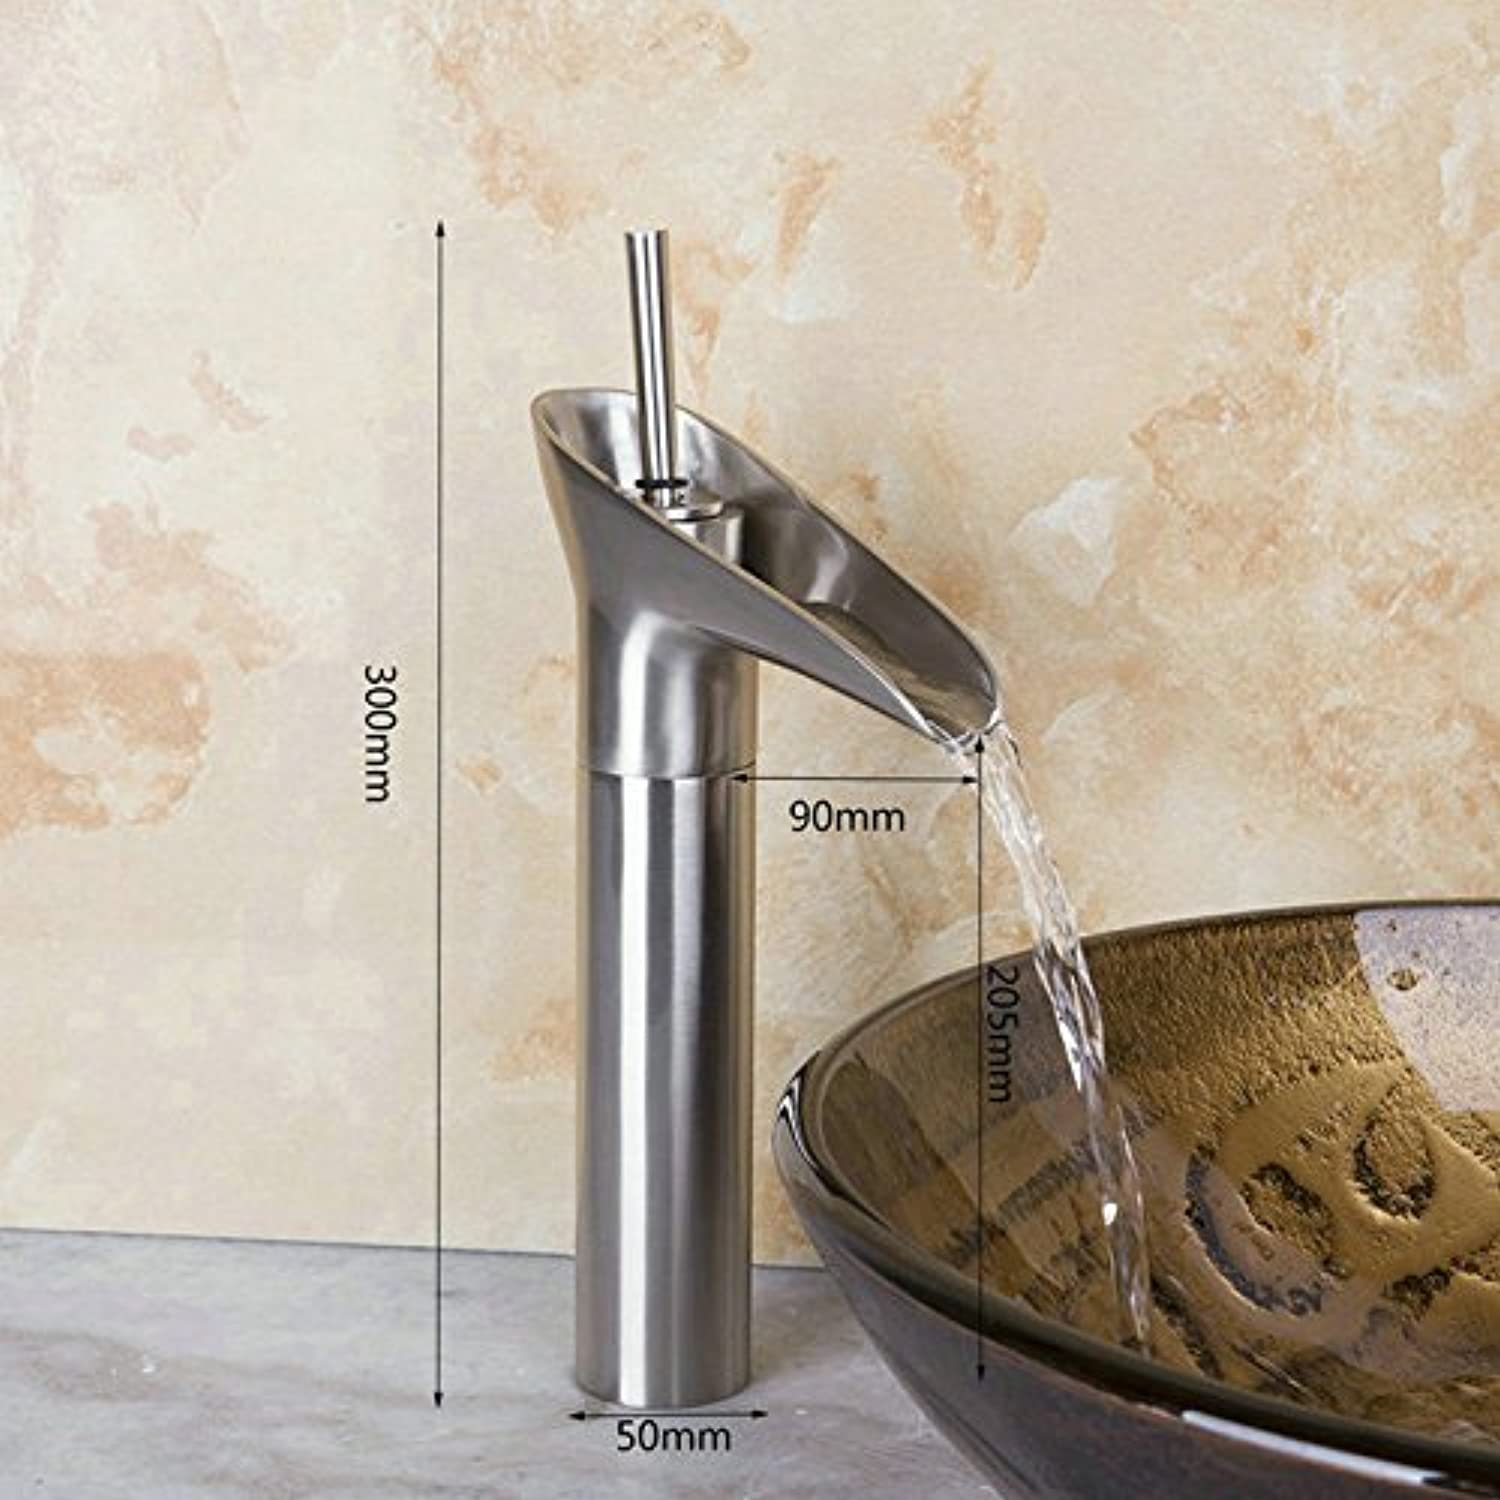 The Brushed Nickel Bridge of The mounting of Bath Rooms Sinks Mixer Faucet Sinks taps